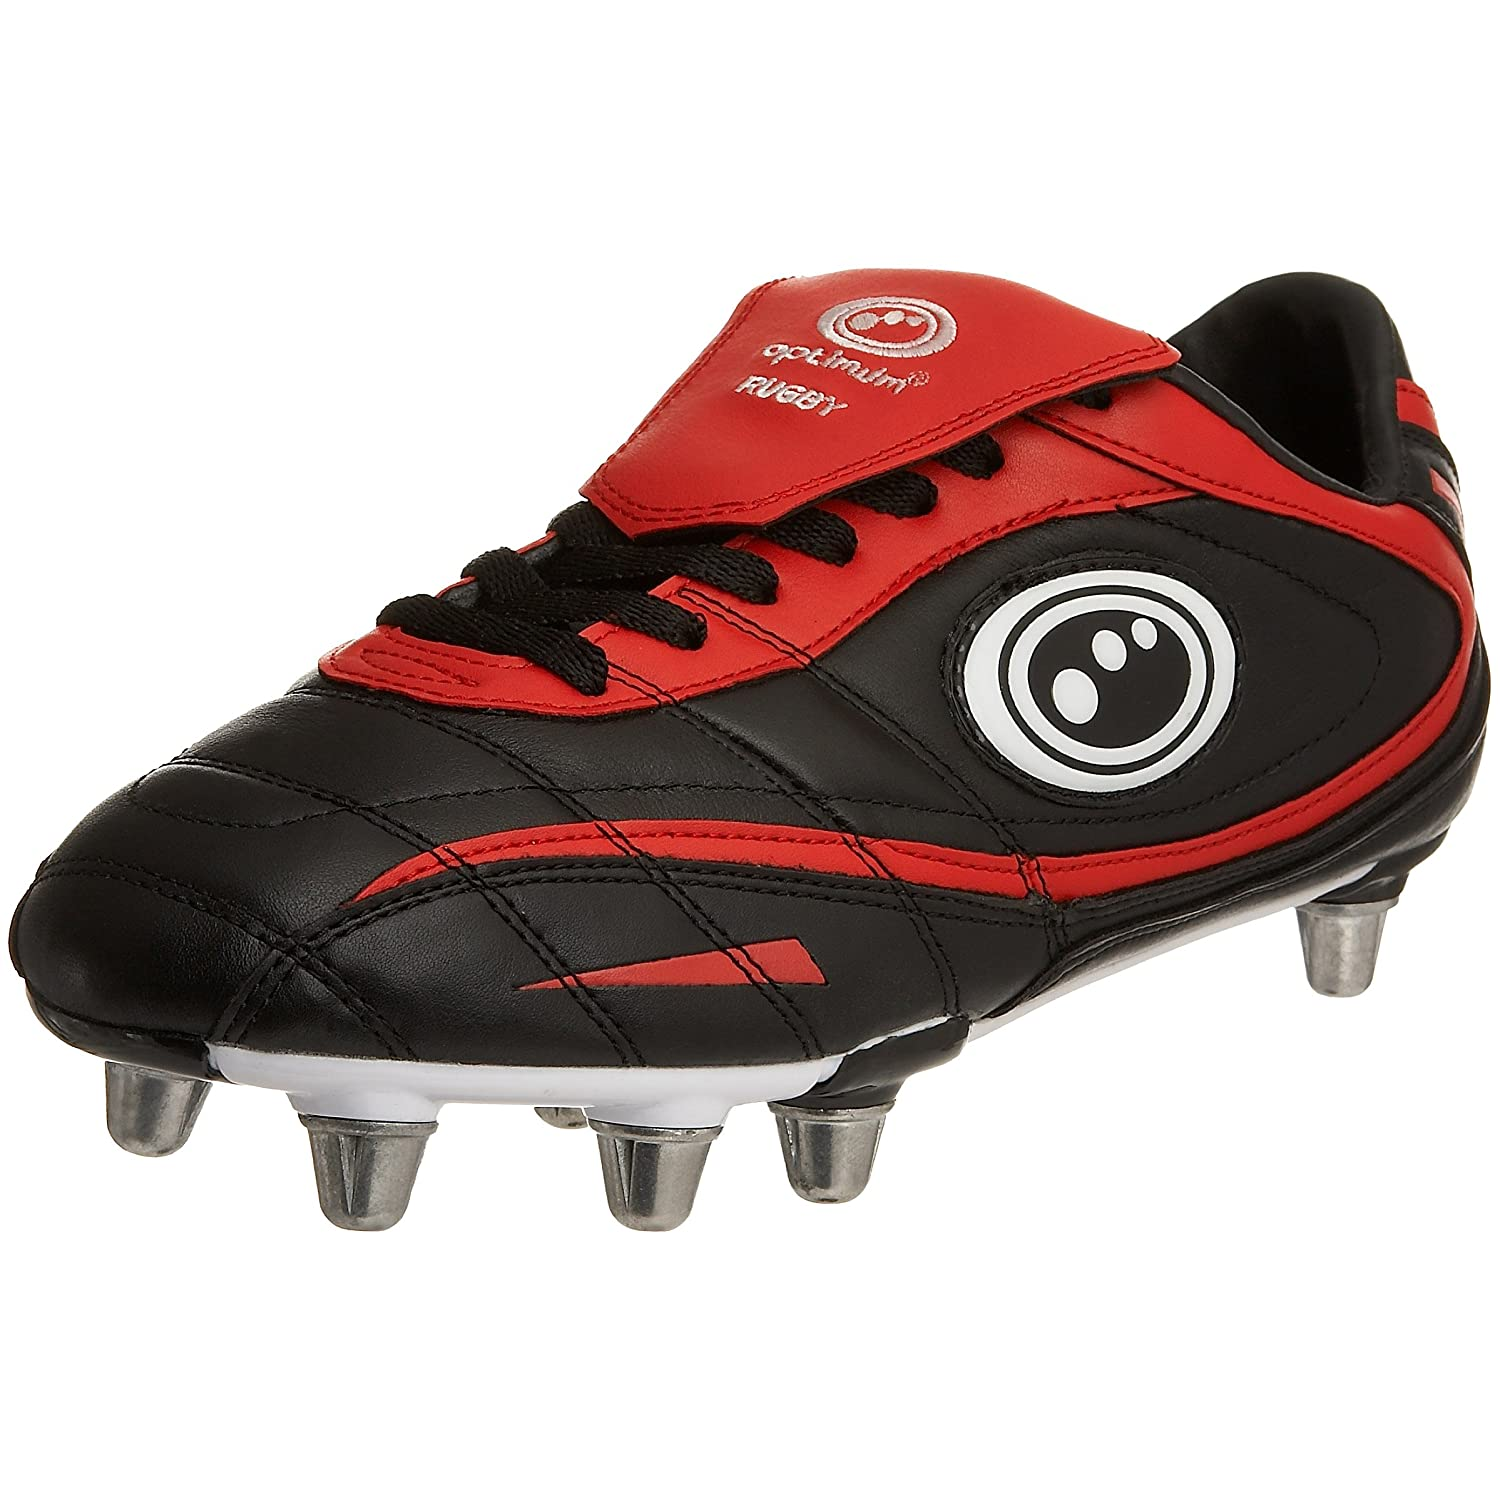 Adult Inferno II Rugby Boots Black/Red US11